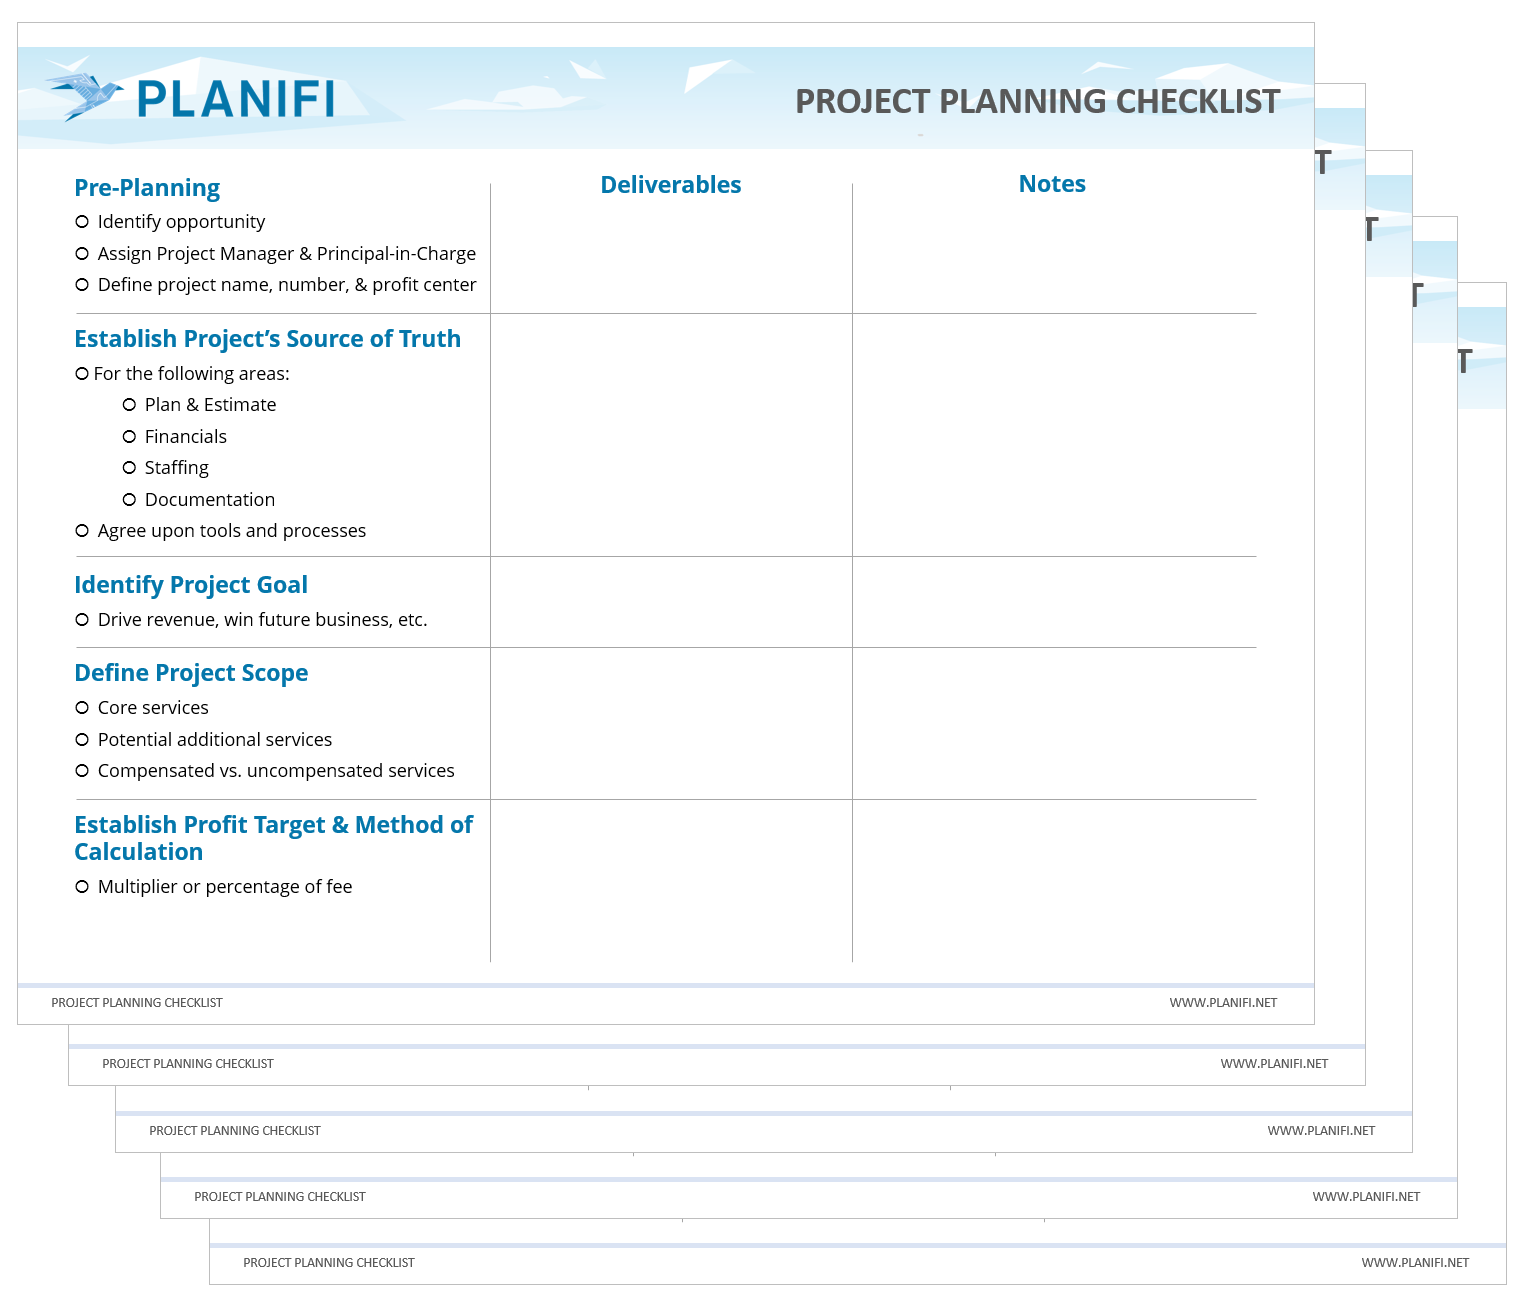 Planifi Project Planning Checklist.png